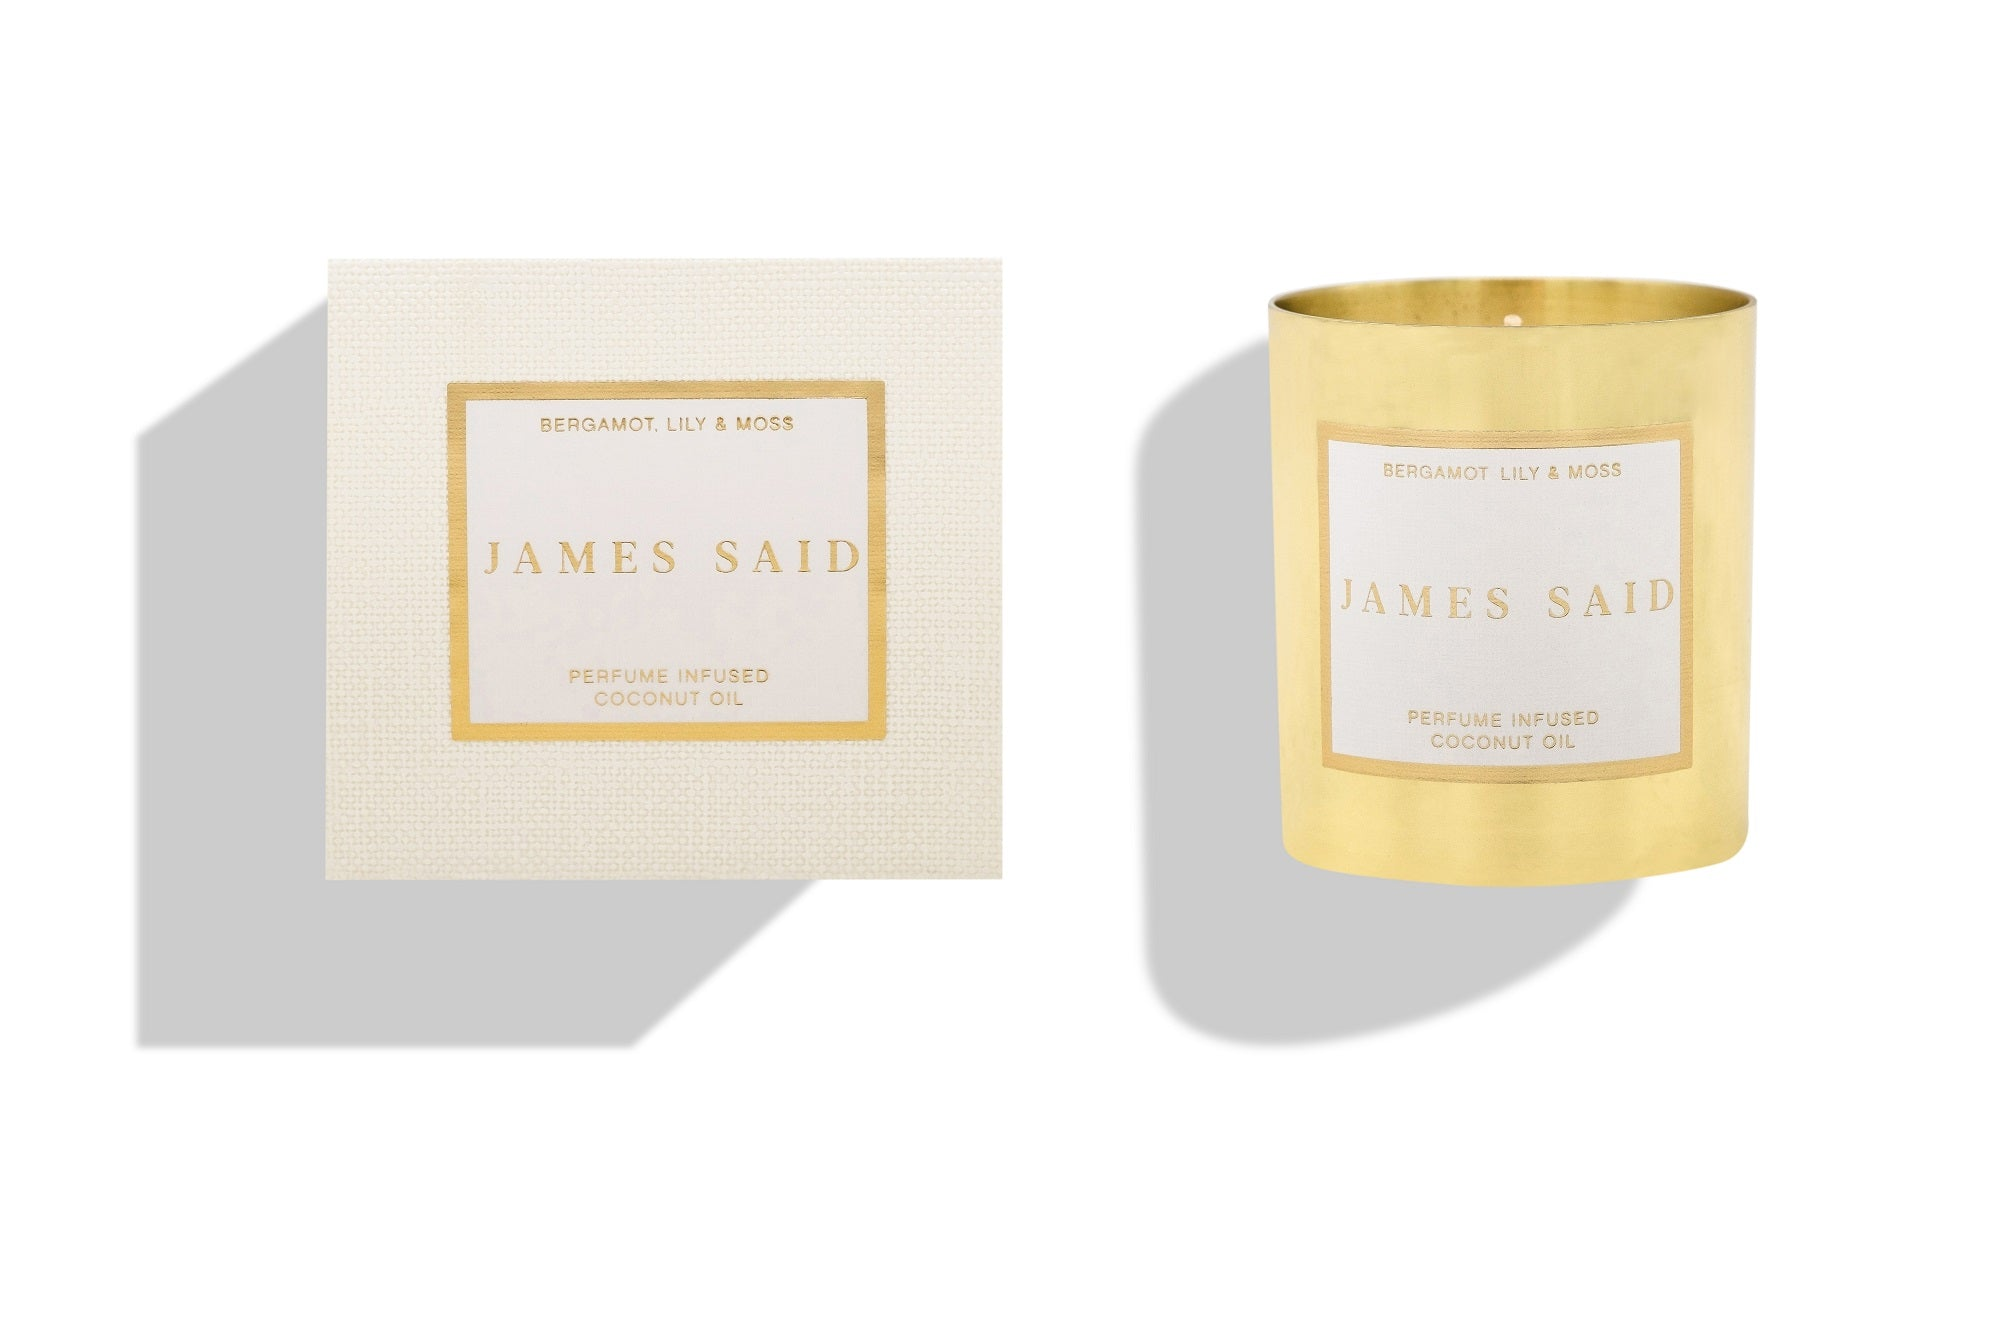 James Said Bergamot, Lily & Moss Brass Candles - 225g